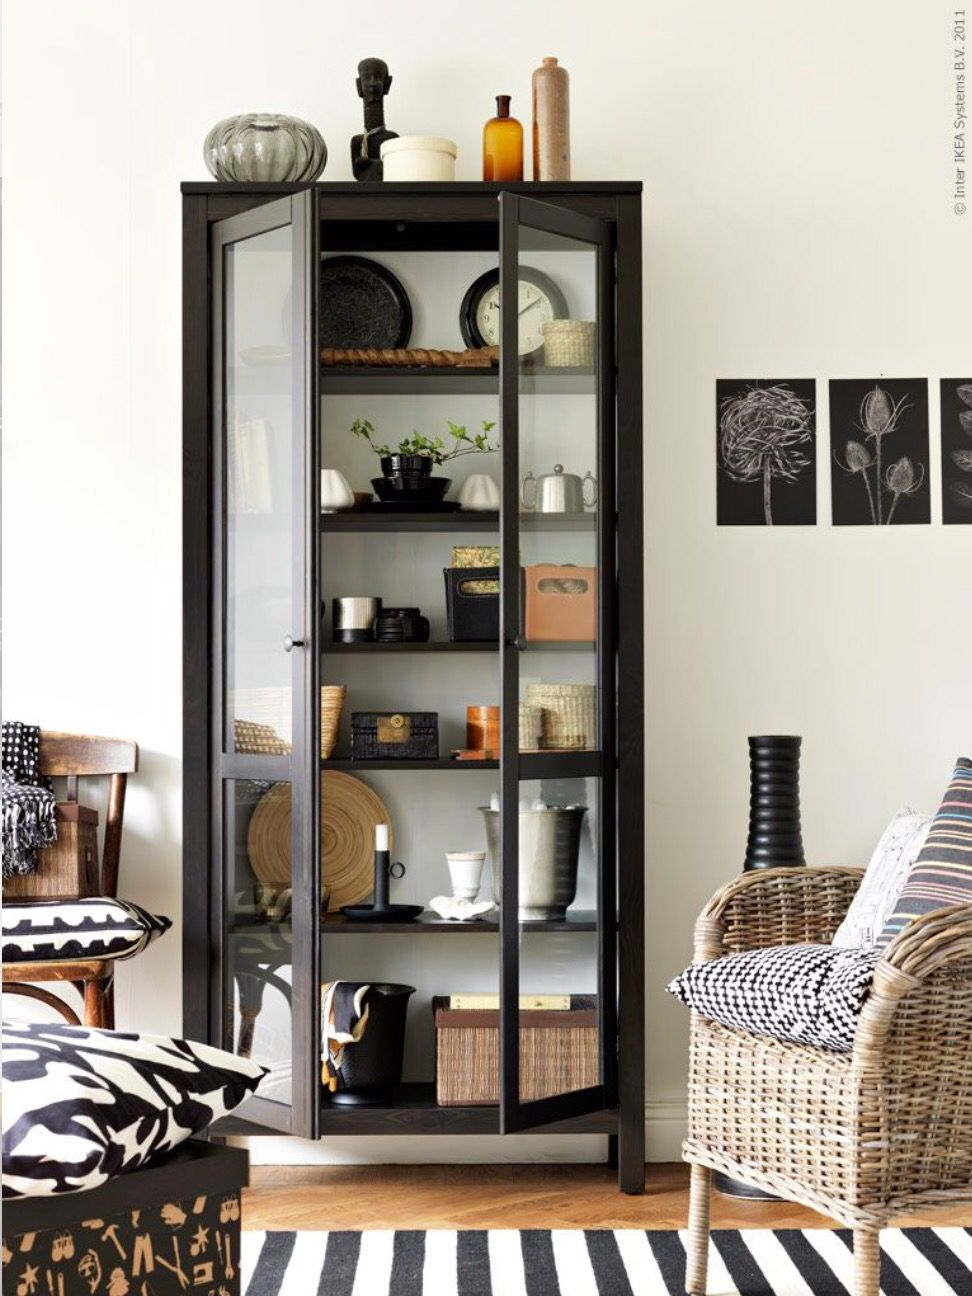 Ikea Shelves Hemnes Daybed In A Boys Bedroom: Glass Cabinet Doors, Home Decor